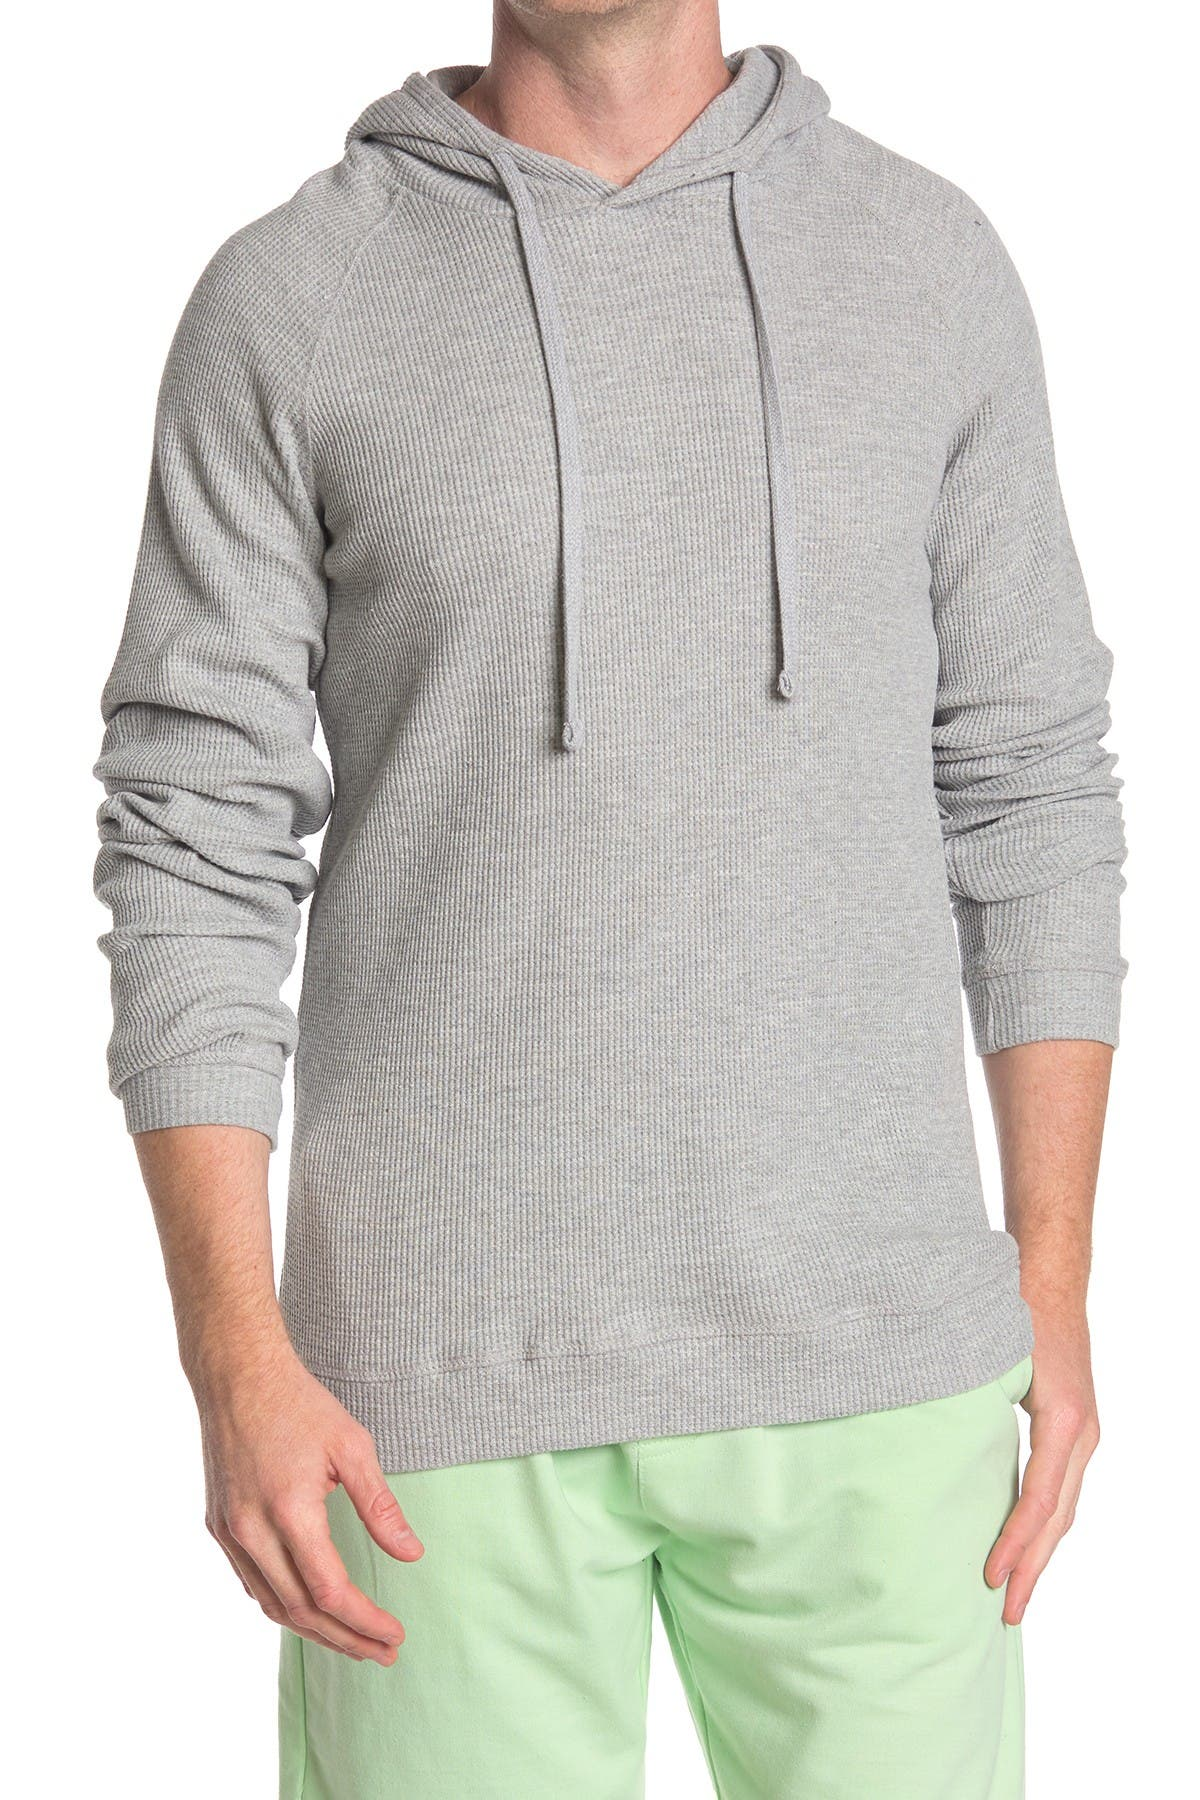 Image of Trunks Surf and Swim CO. Waffle Knit Hoodie